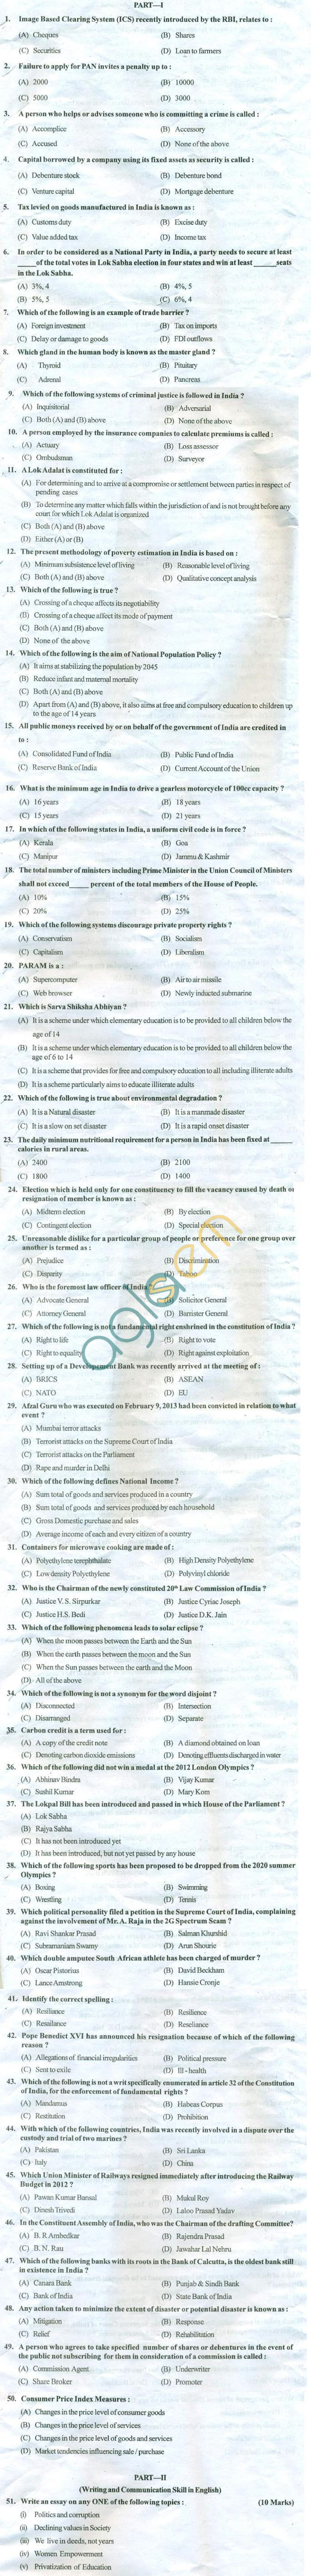 PU LL.B 2013 Question Paper with Answers in panjab university  Category